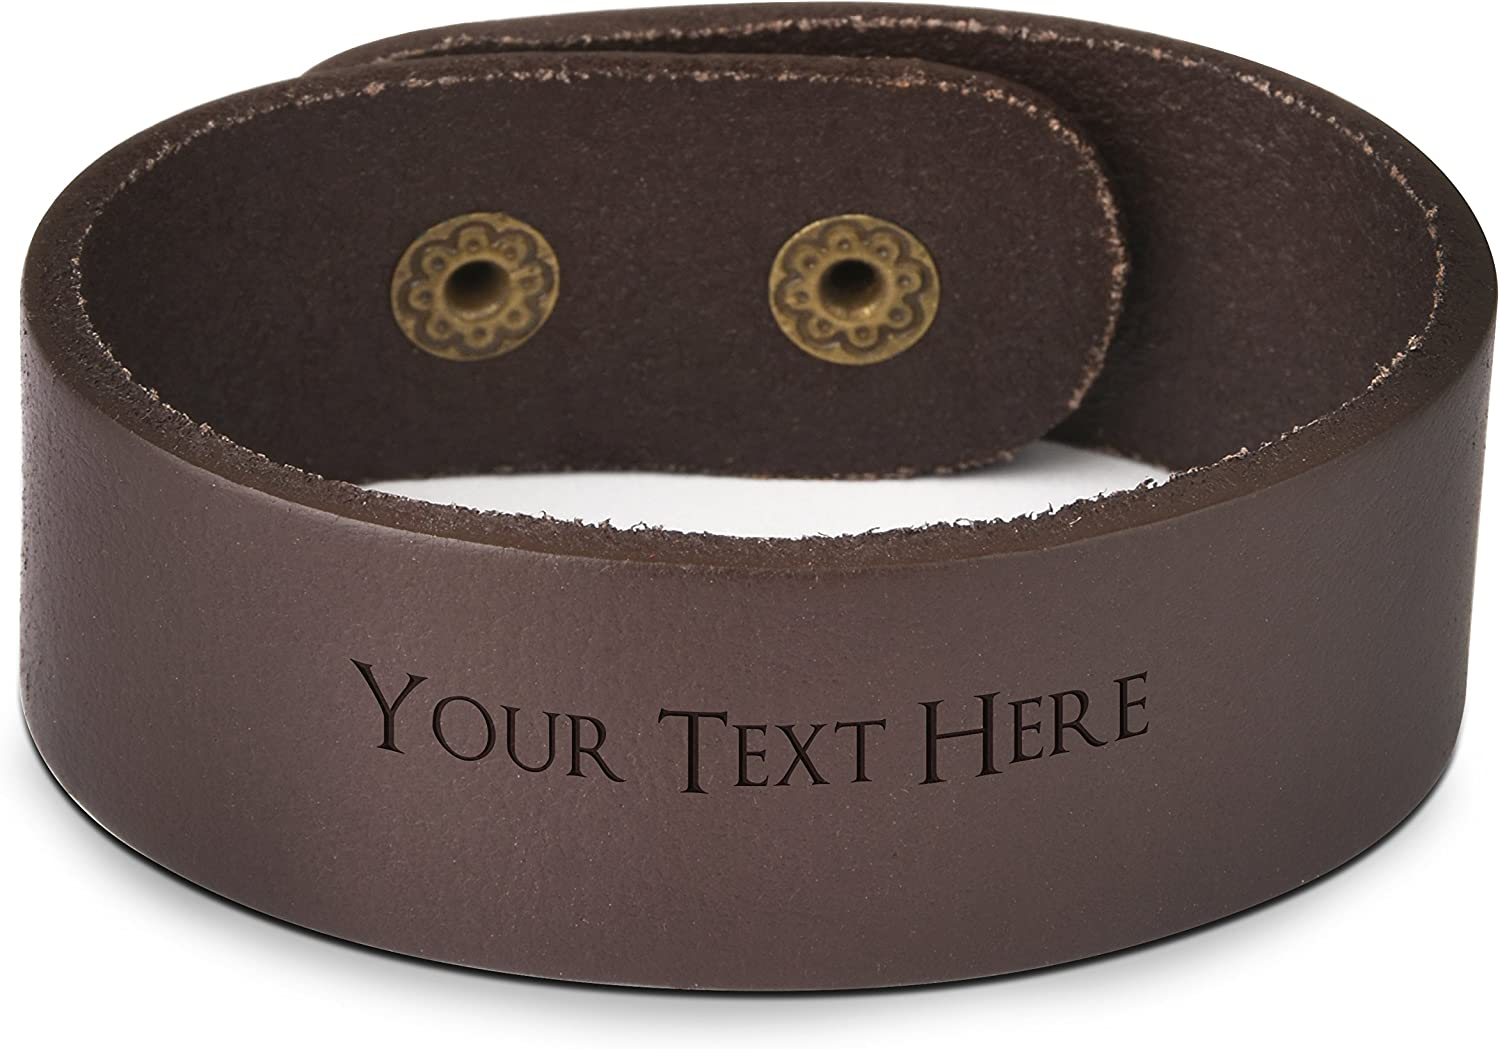 Personalized Genuine Leather Engraving Name Bracelets Wristband Birthday Gift